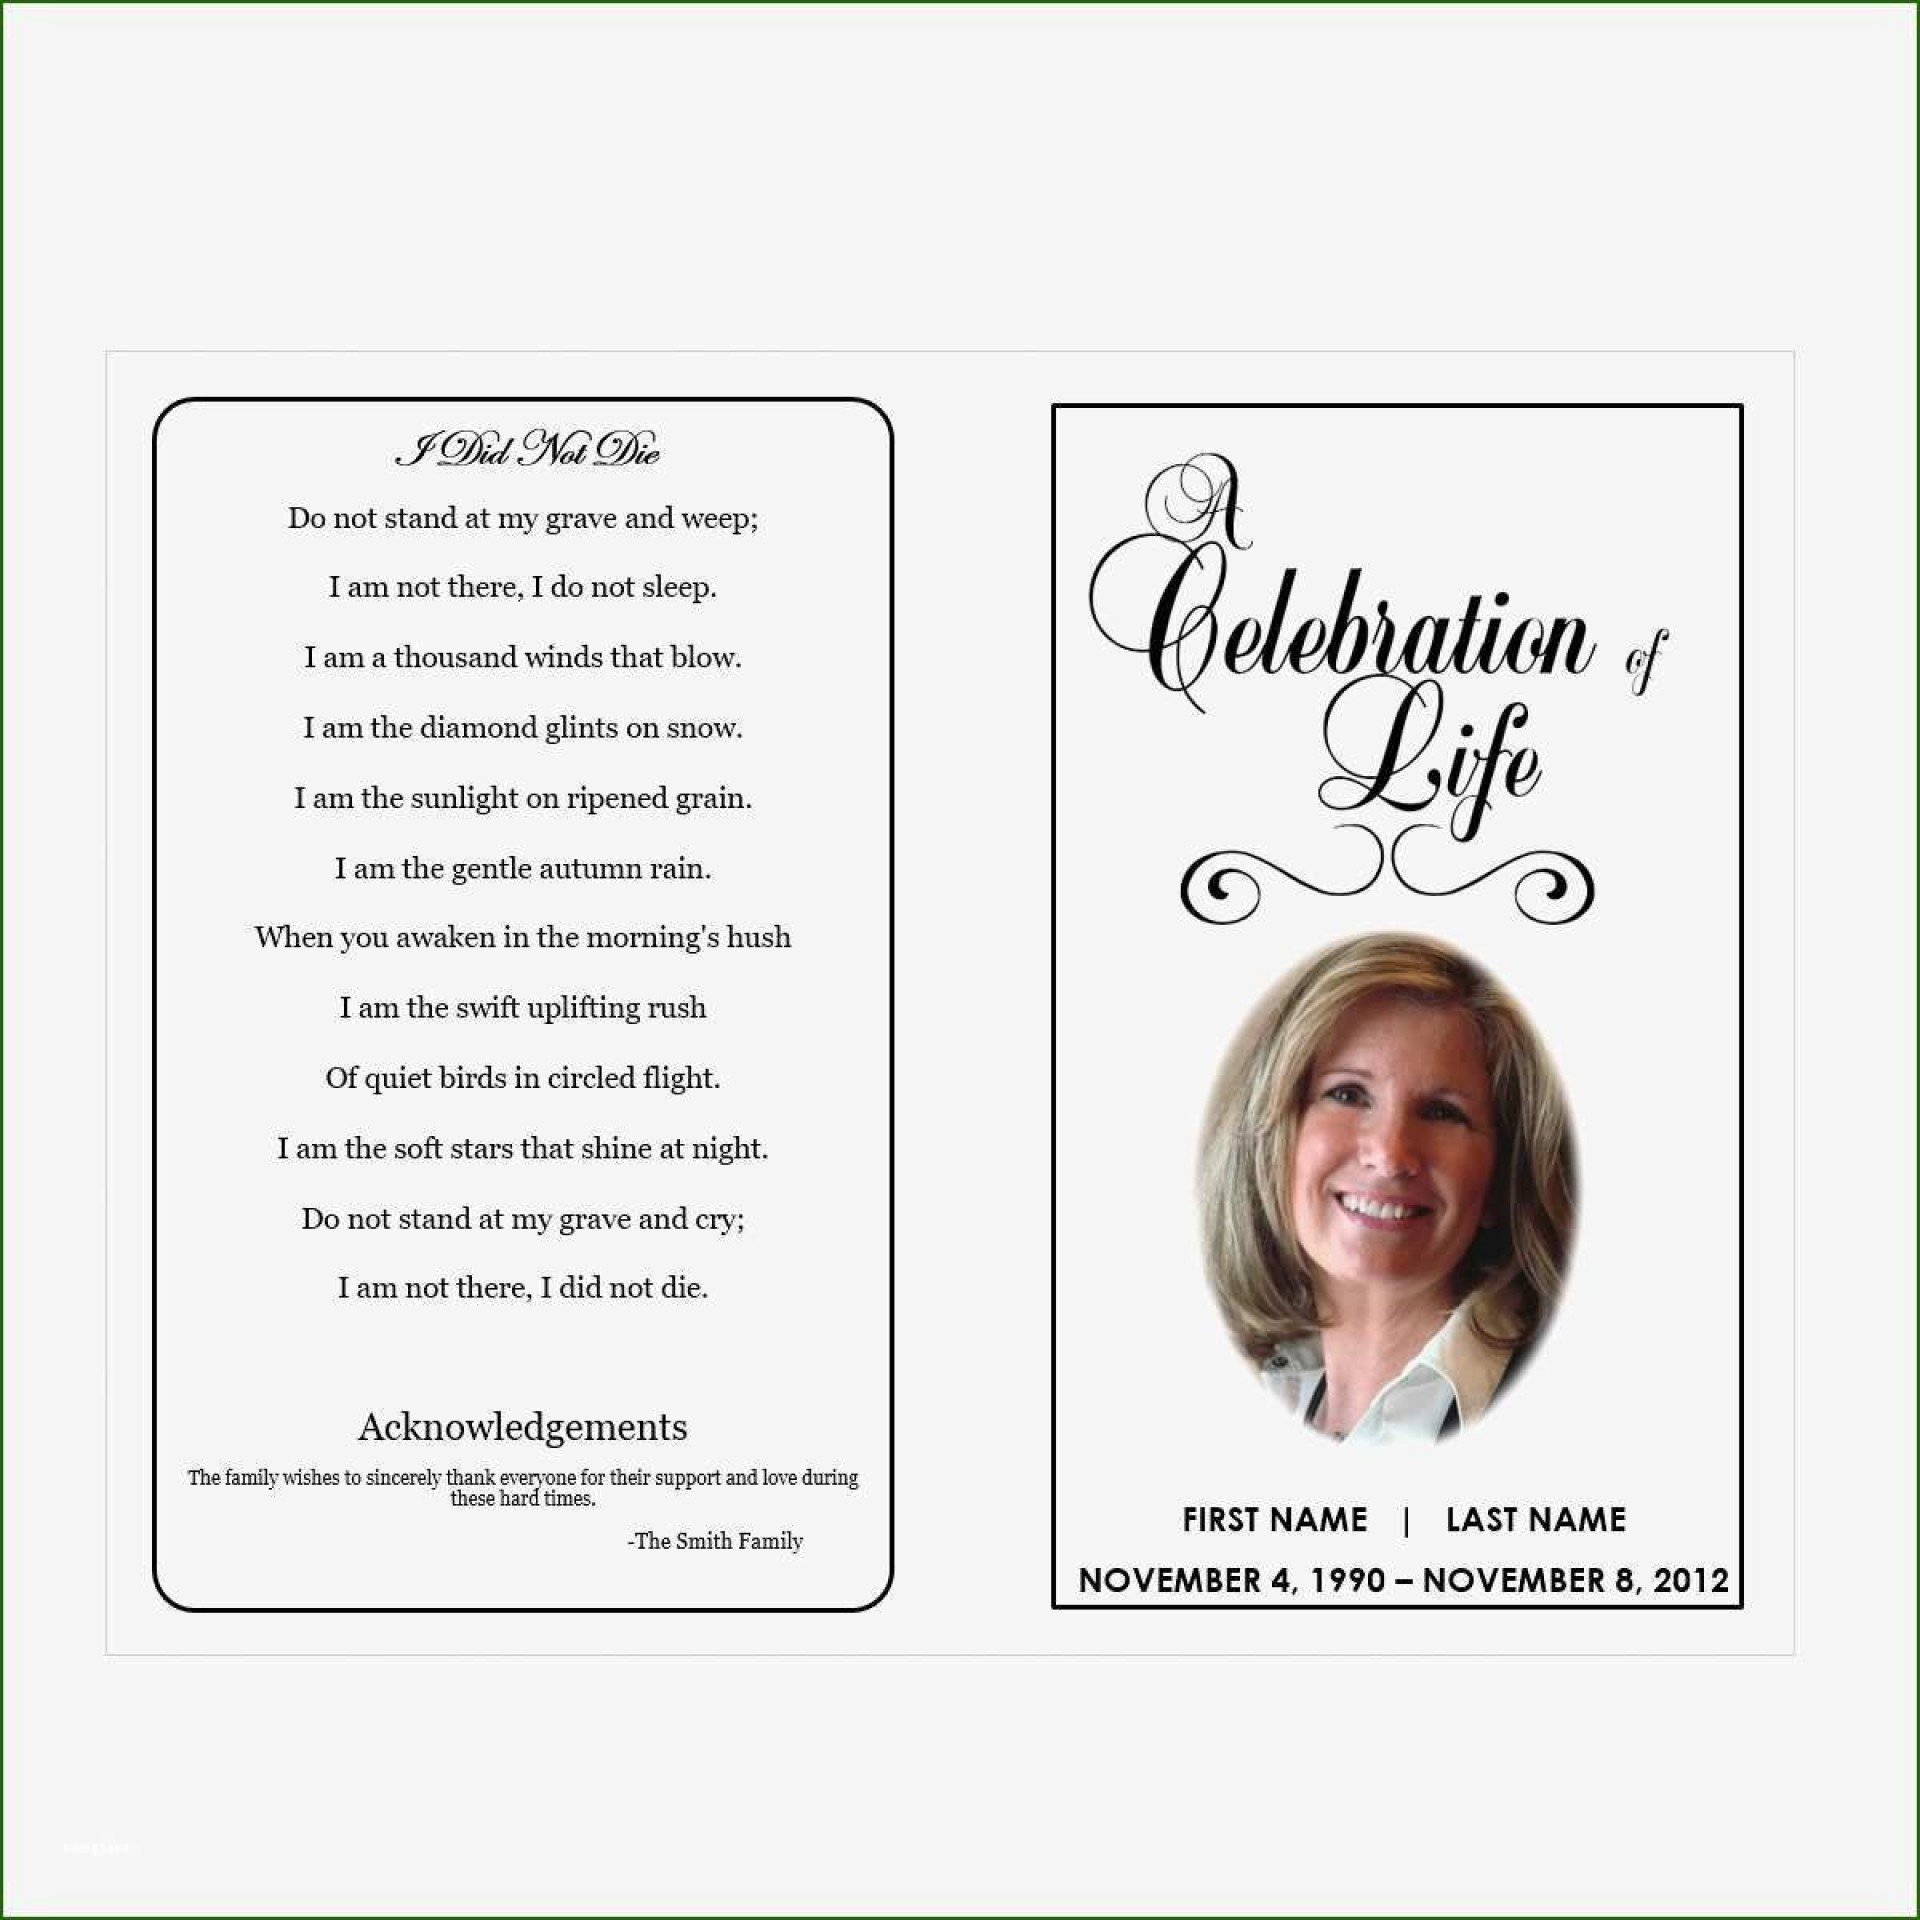 004 Exceptional Free Printable Celebration Of Life Program Template Image 1920